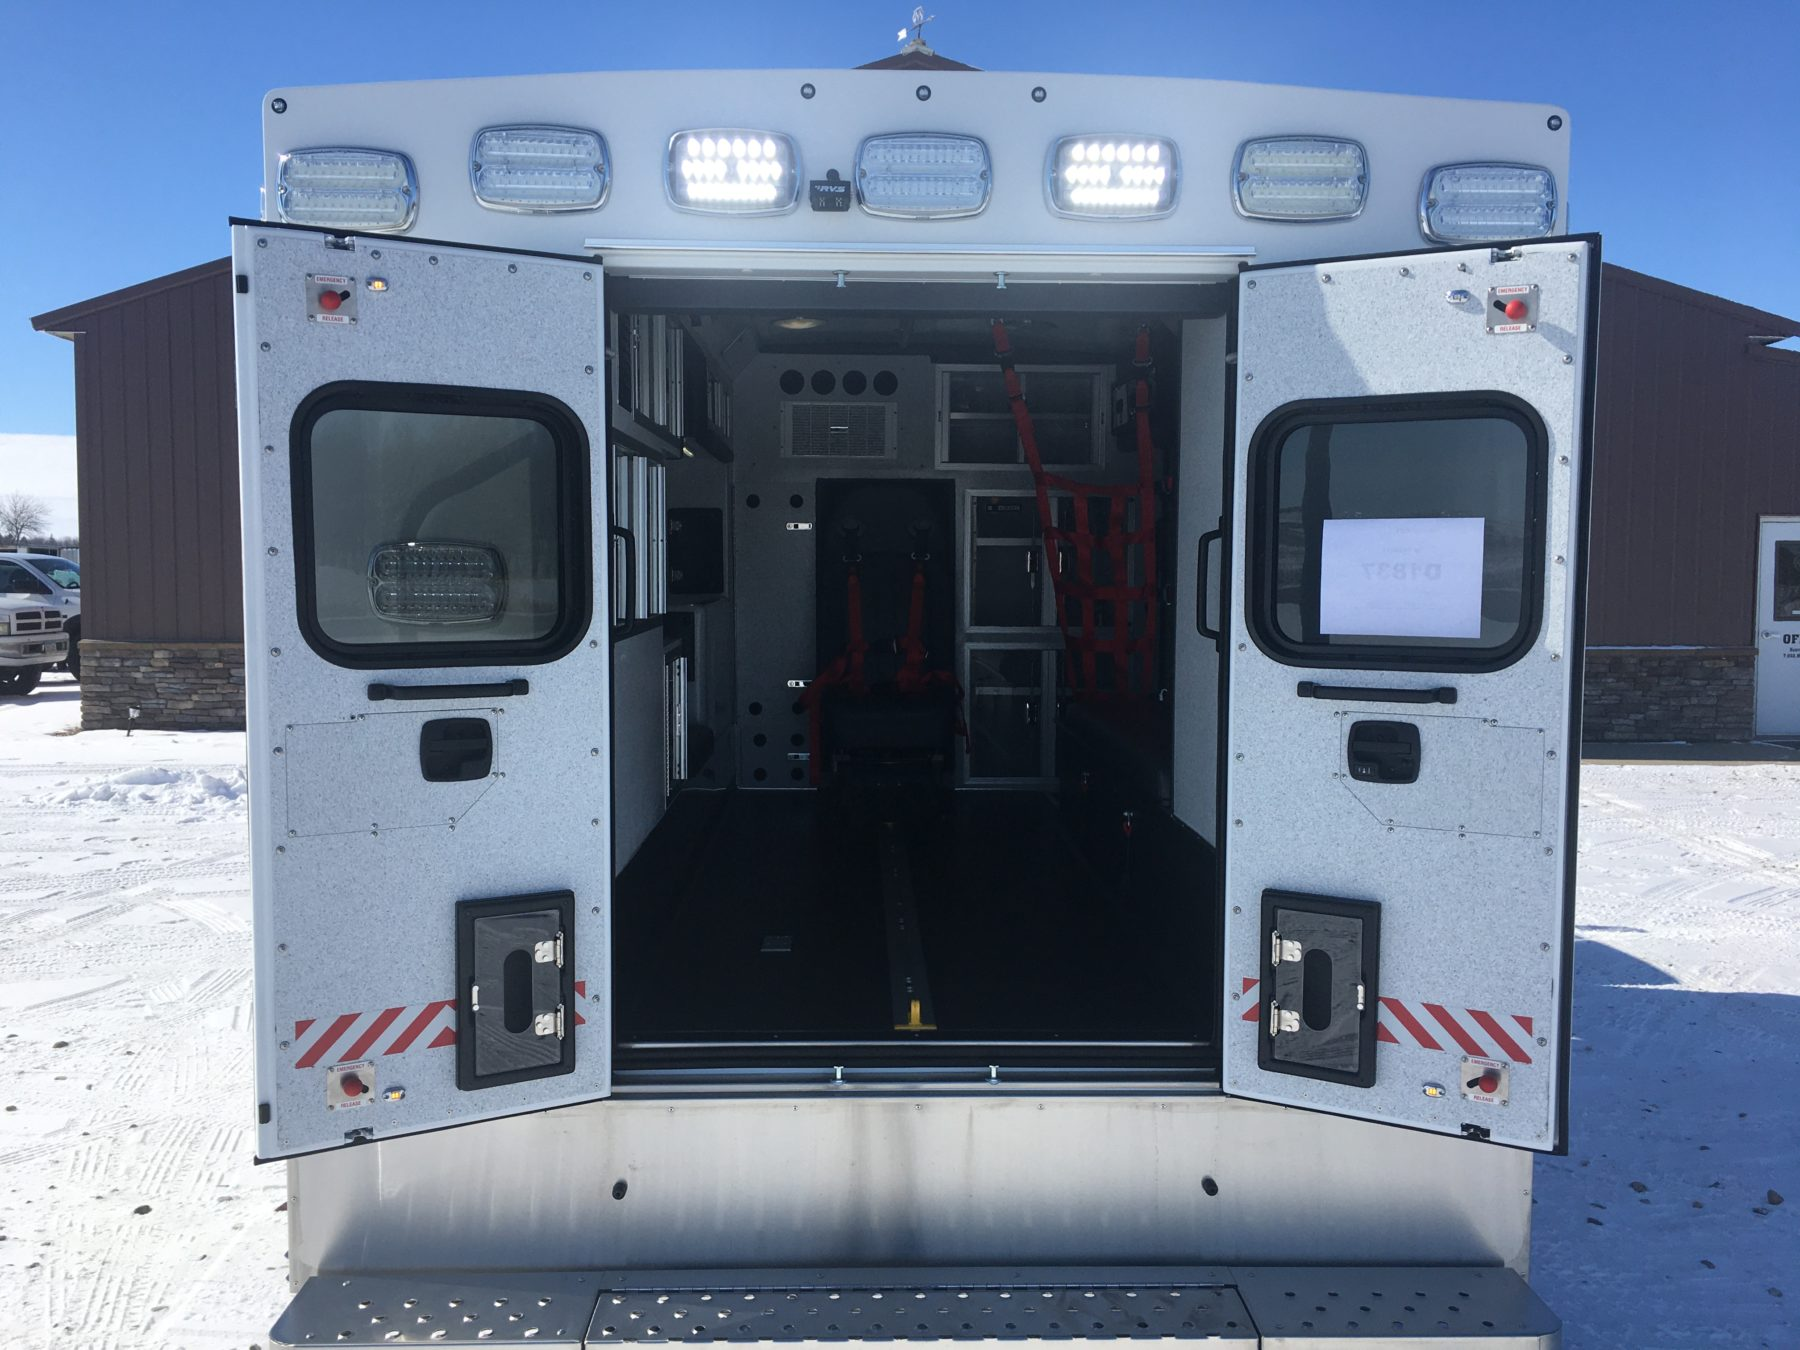 2020 Ram 4500 4x4 Heavy Duty Ambulance For Sale – Picture 9